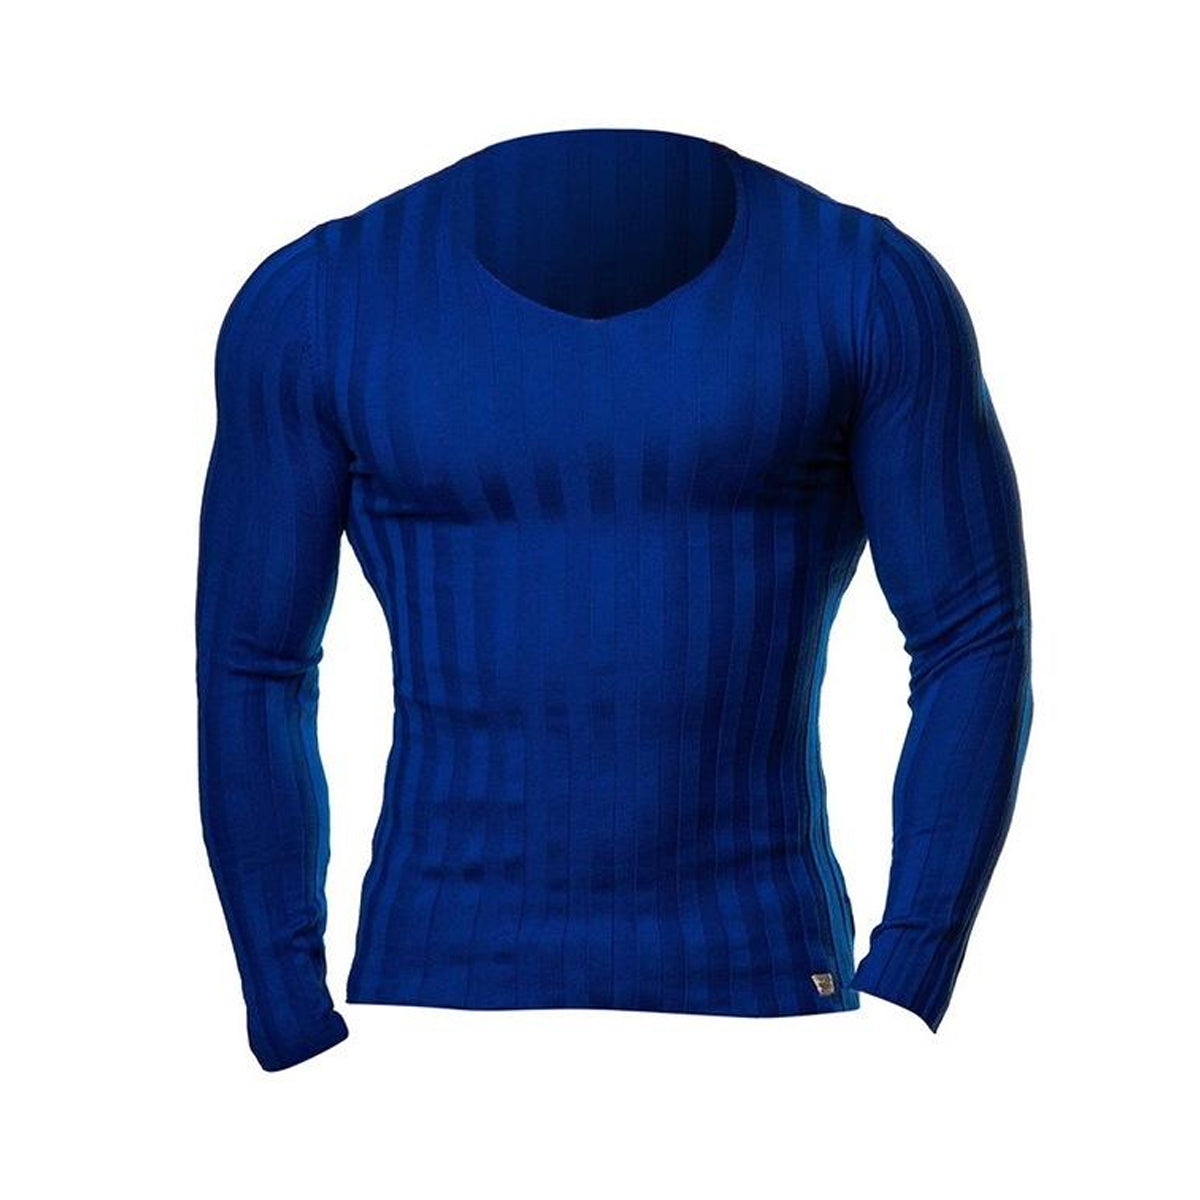 Fashionable Knitted Slim Fit V-neck Long Sleeve Tee